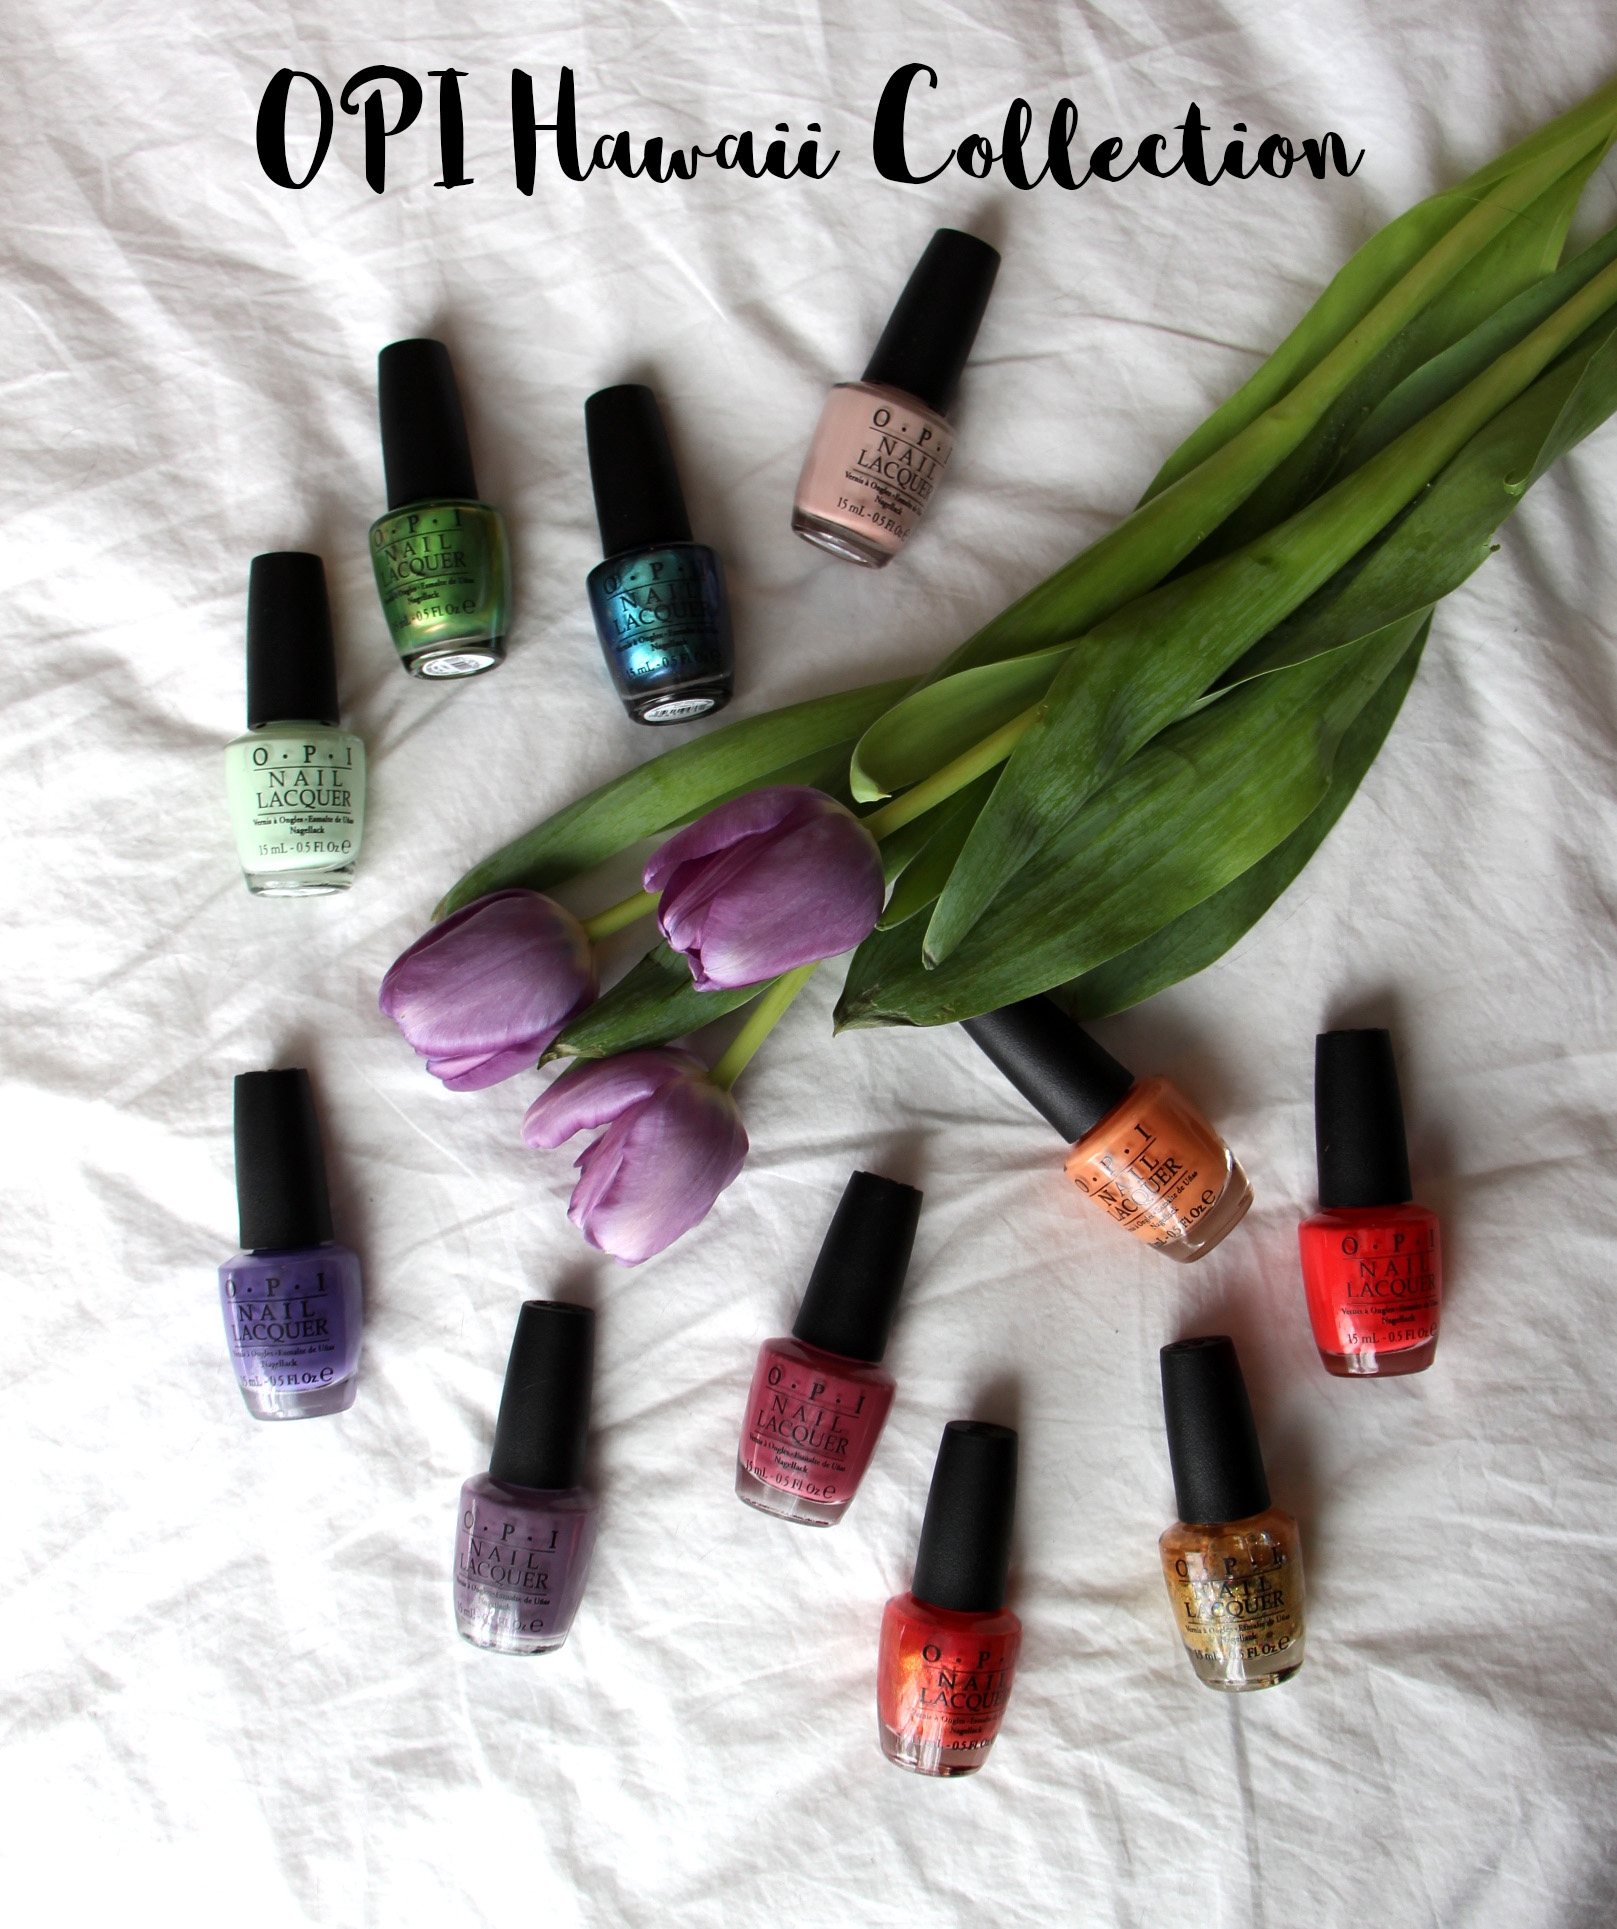 OPI Hawaii Collection Review